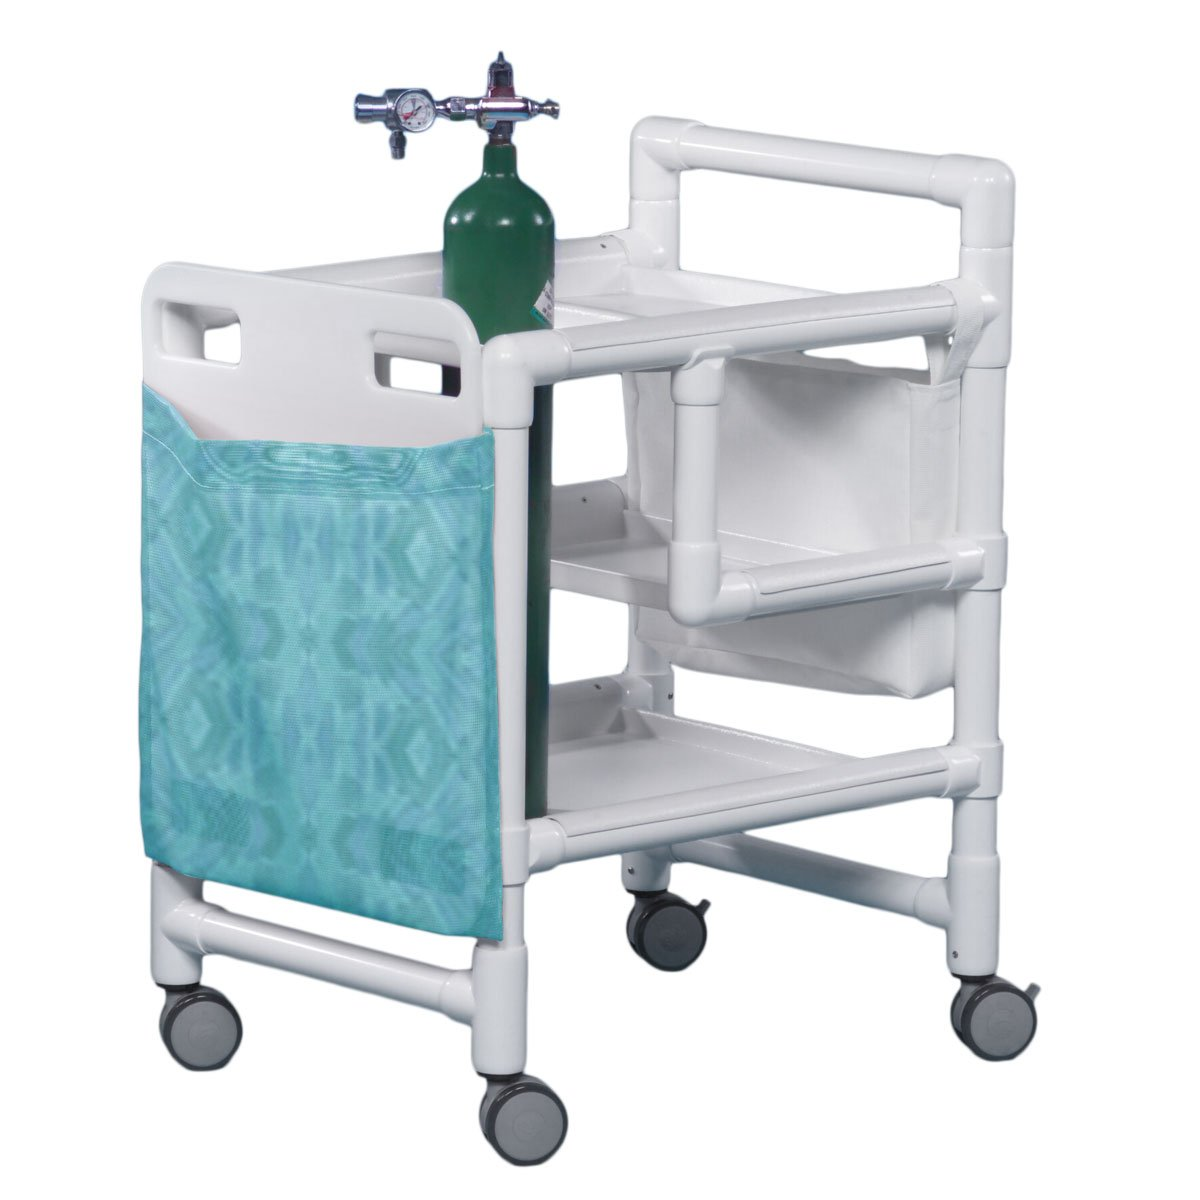 Optional Cover For Emergency Cart Sure Chek TBrass